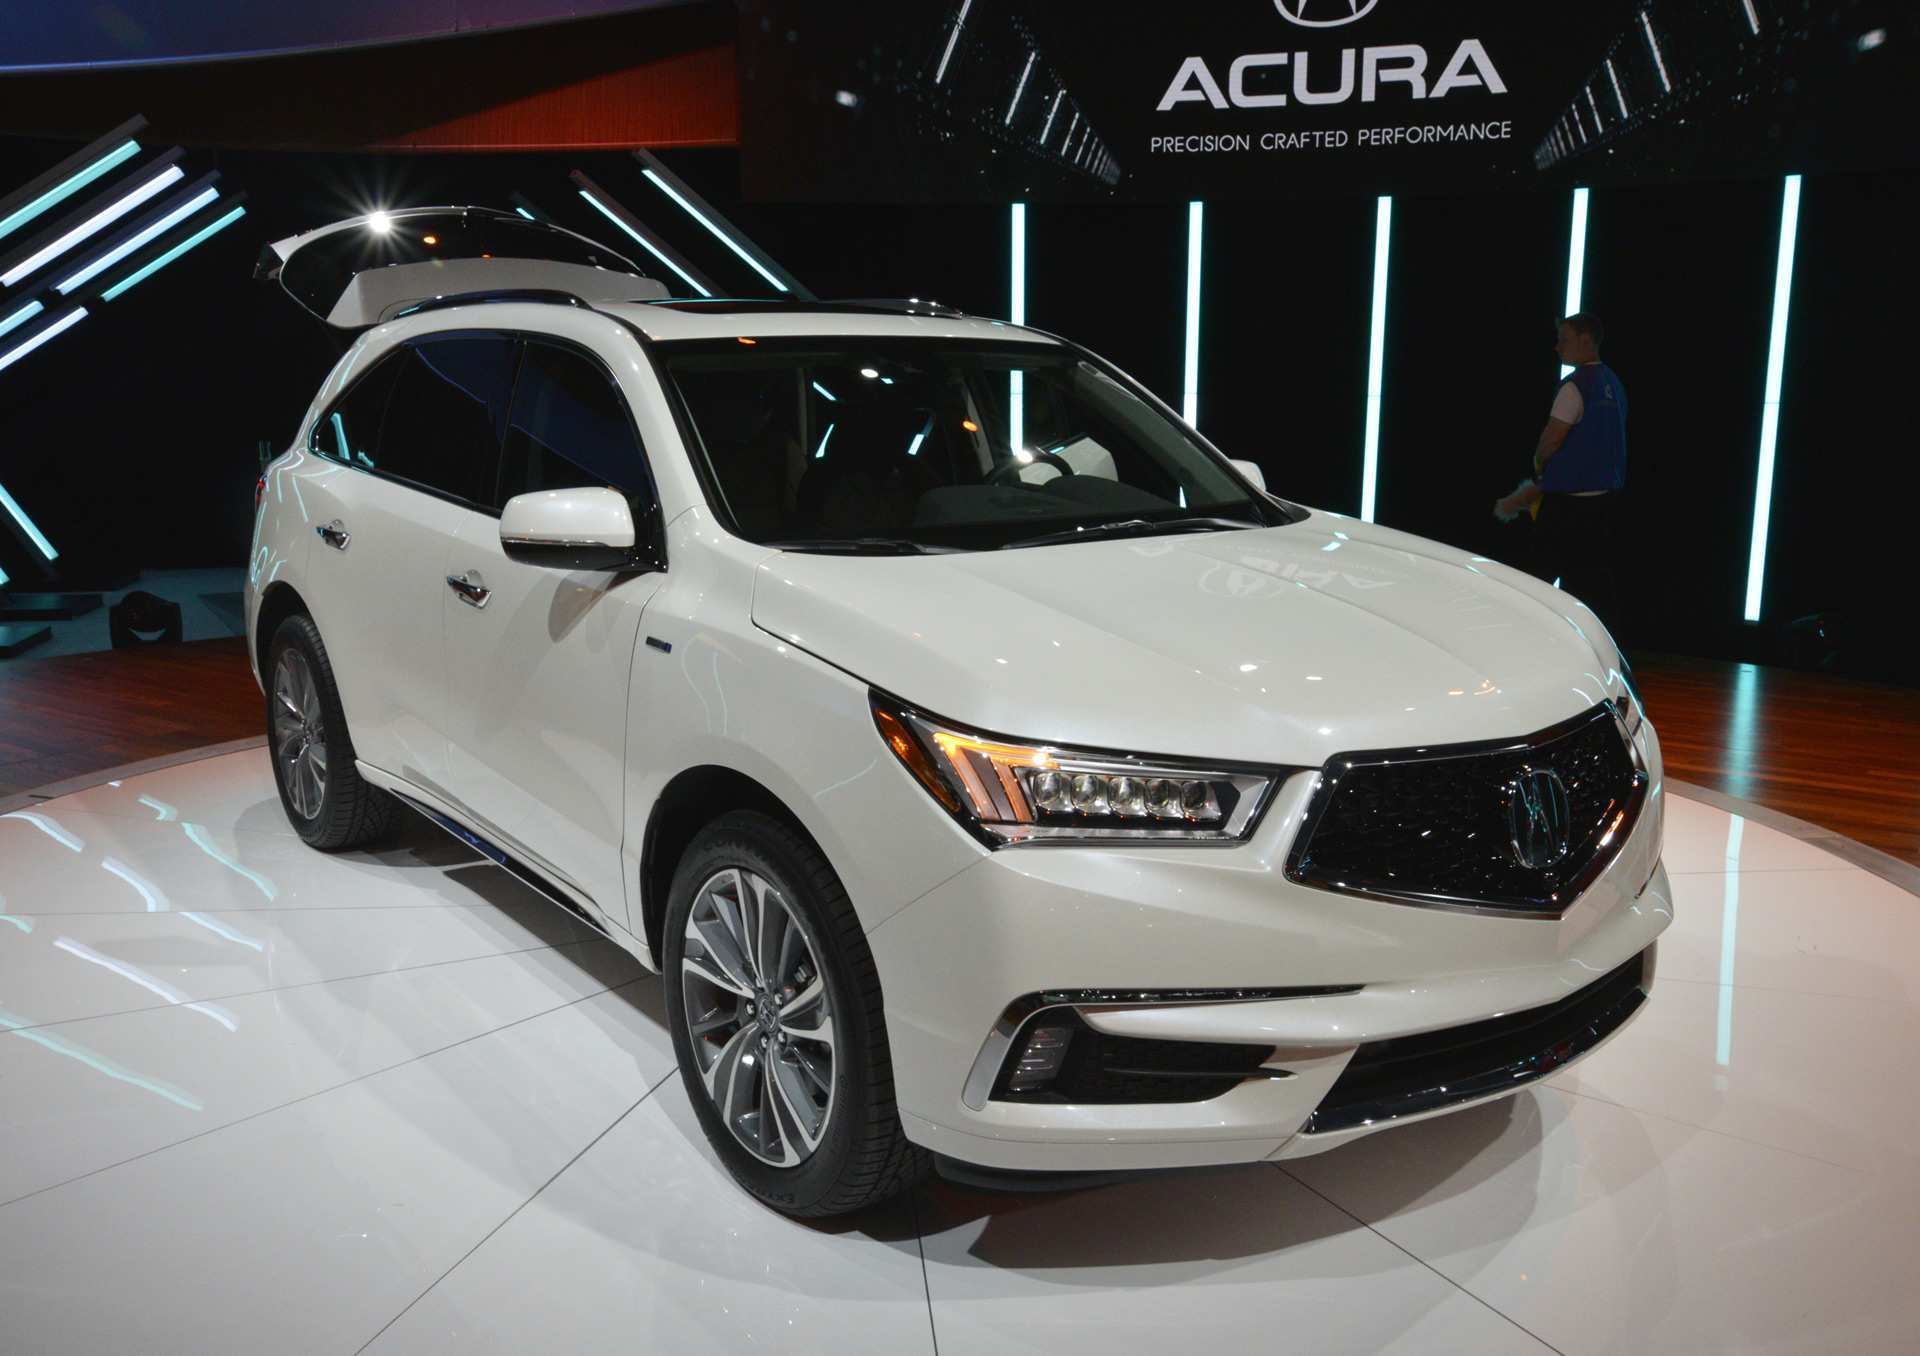 72 Best Review 2020 Acura Mdx Detroit Auto Show Images with 2020 Acura Mdx Detroit Auto Show